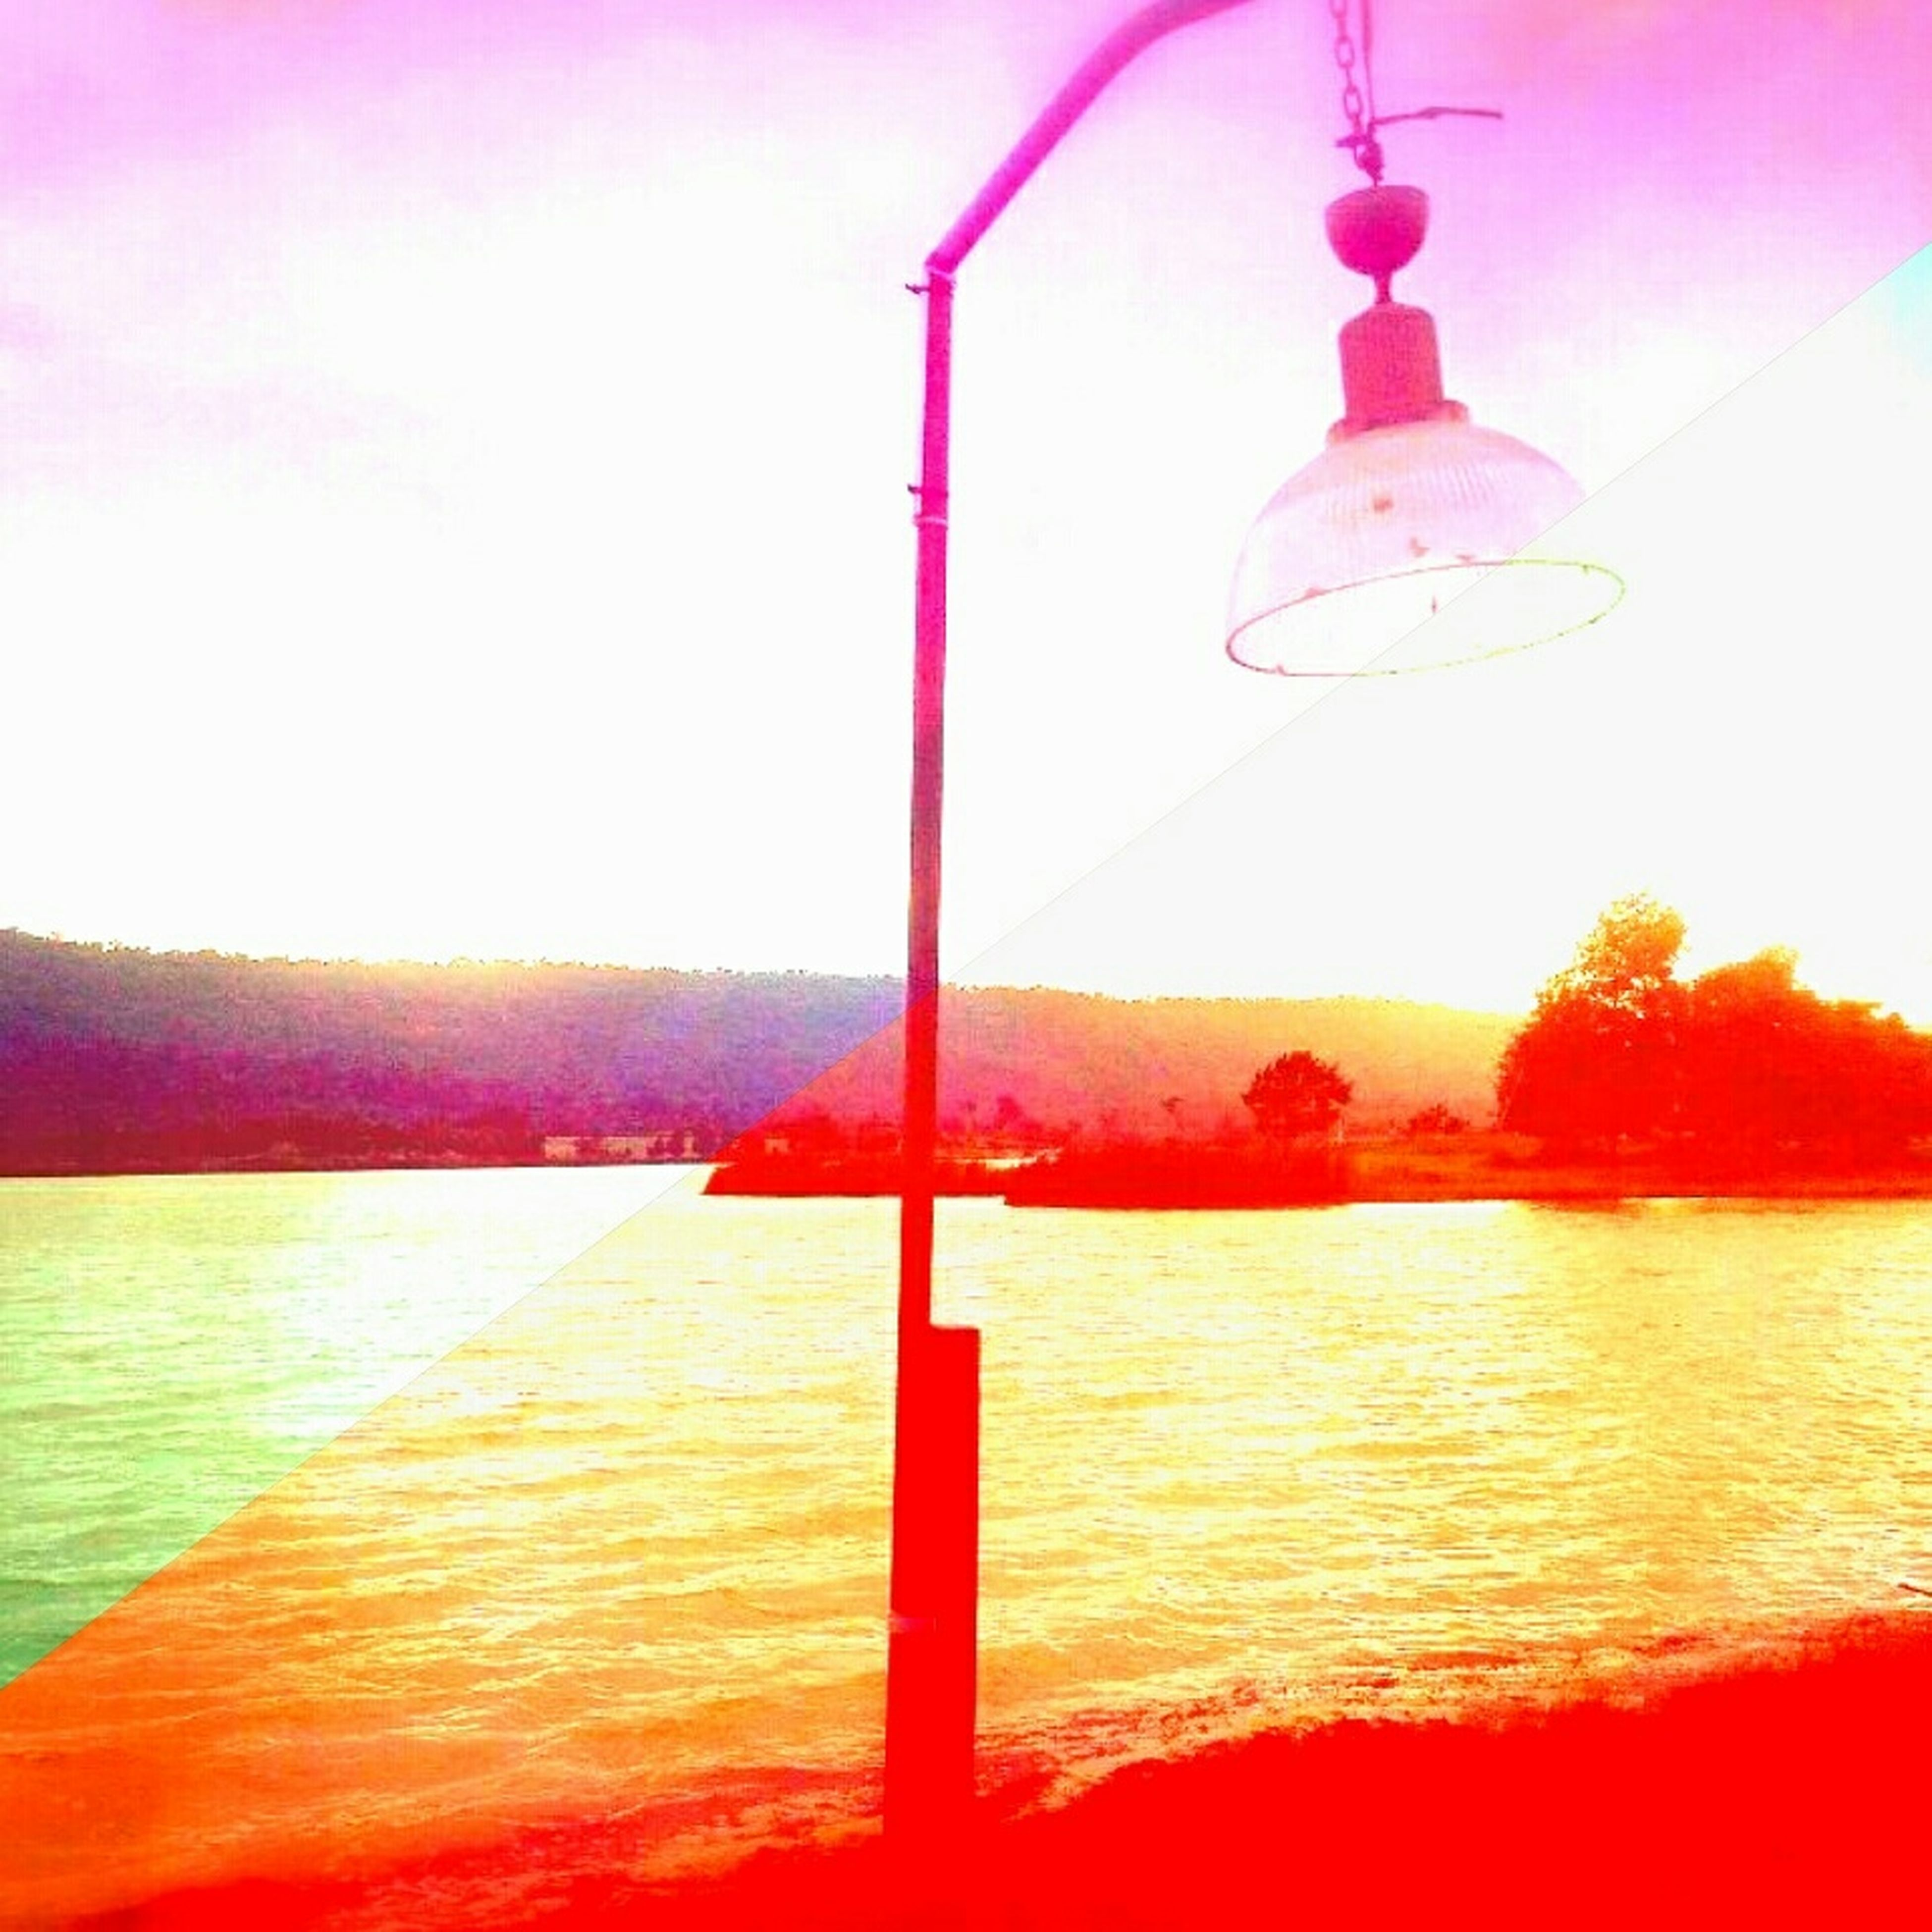 lighting equipment, water, red, tranquility, reflection, tranquil scene, sunset, orange color, street light, sky, no people, nature, scenics, lake, beauty in nature, clear sky, outdoors, idyllic, electric light, day